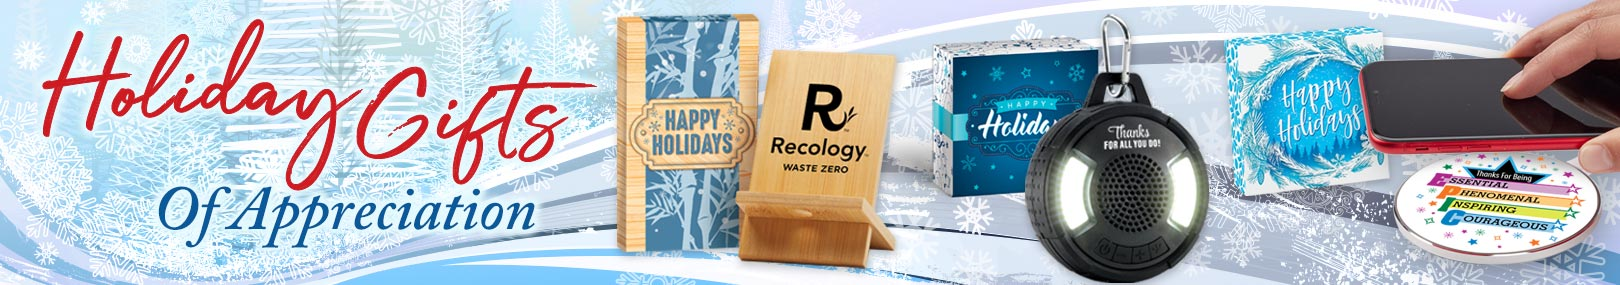 Holiday technology gifts from Positive Promotions